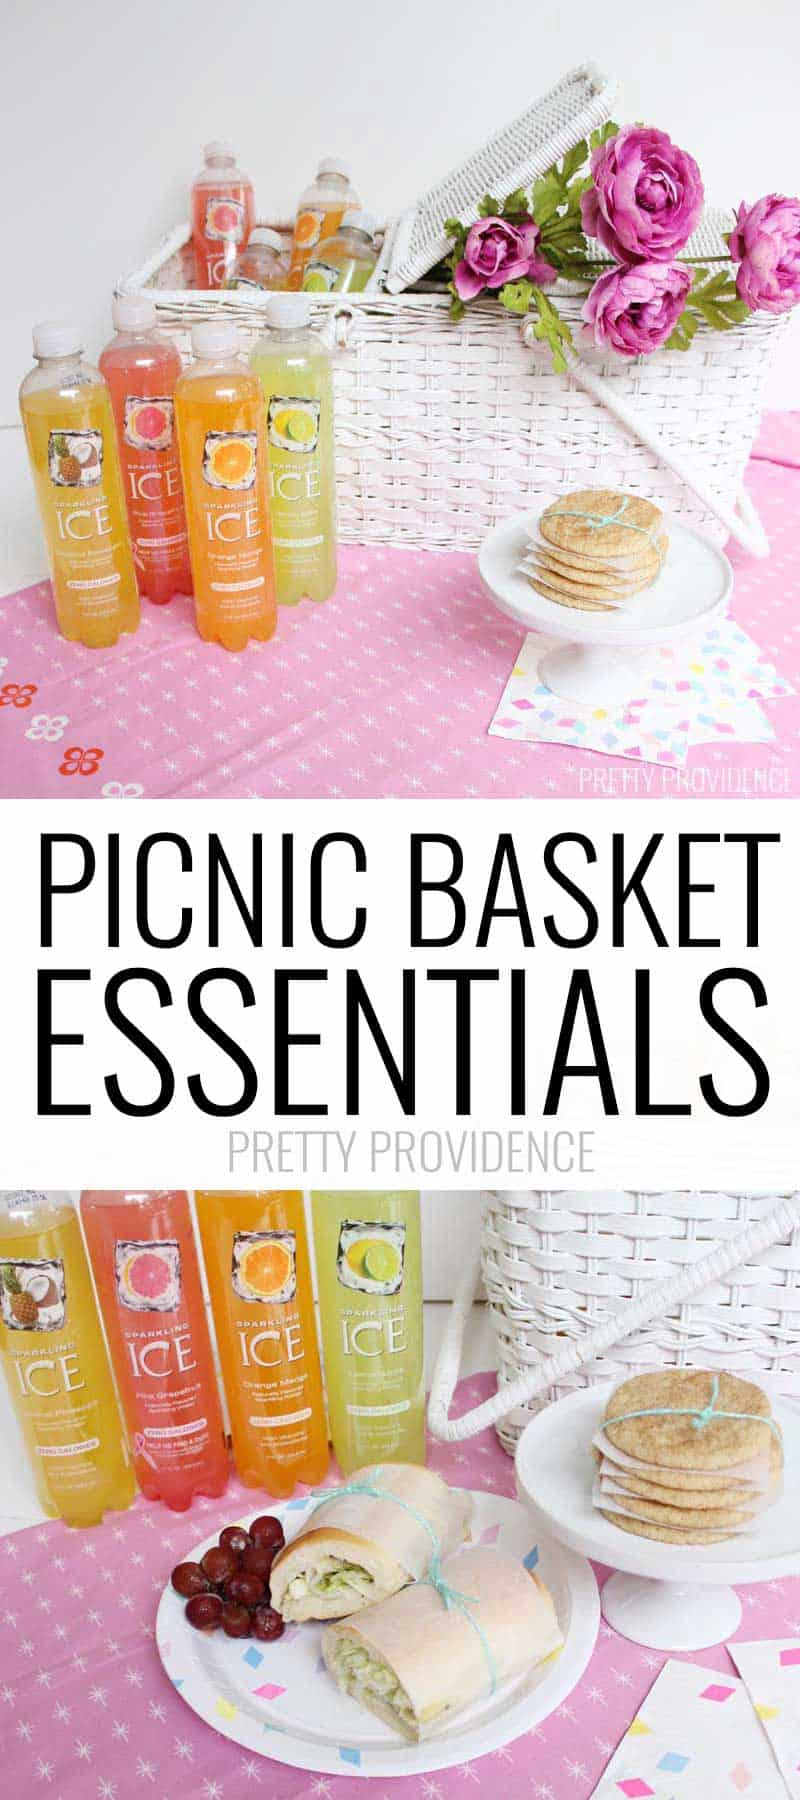 Everything you need to bring for the PERFECT picnic!!!